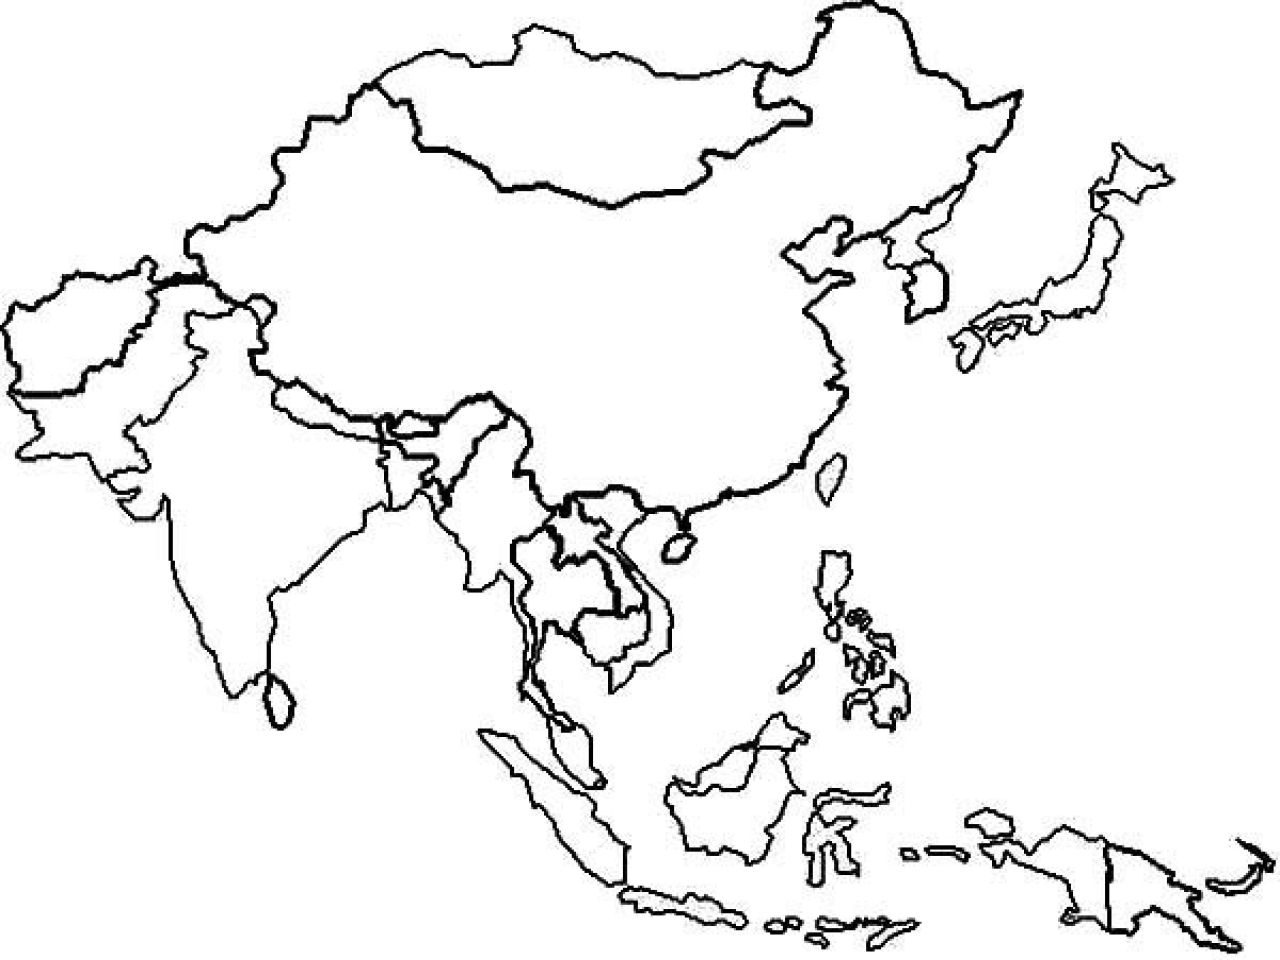 Coloring Countries On World Map Luxury World Map Coloring Page